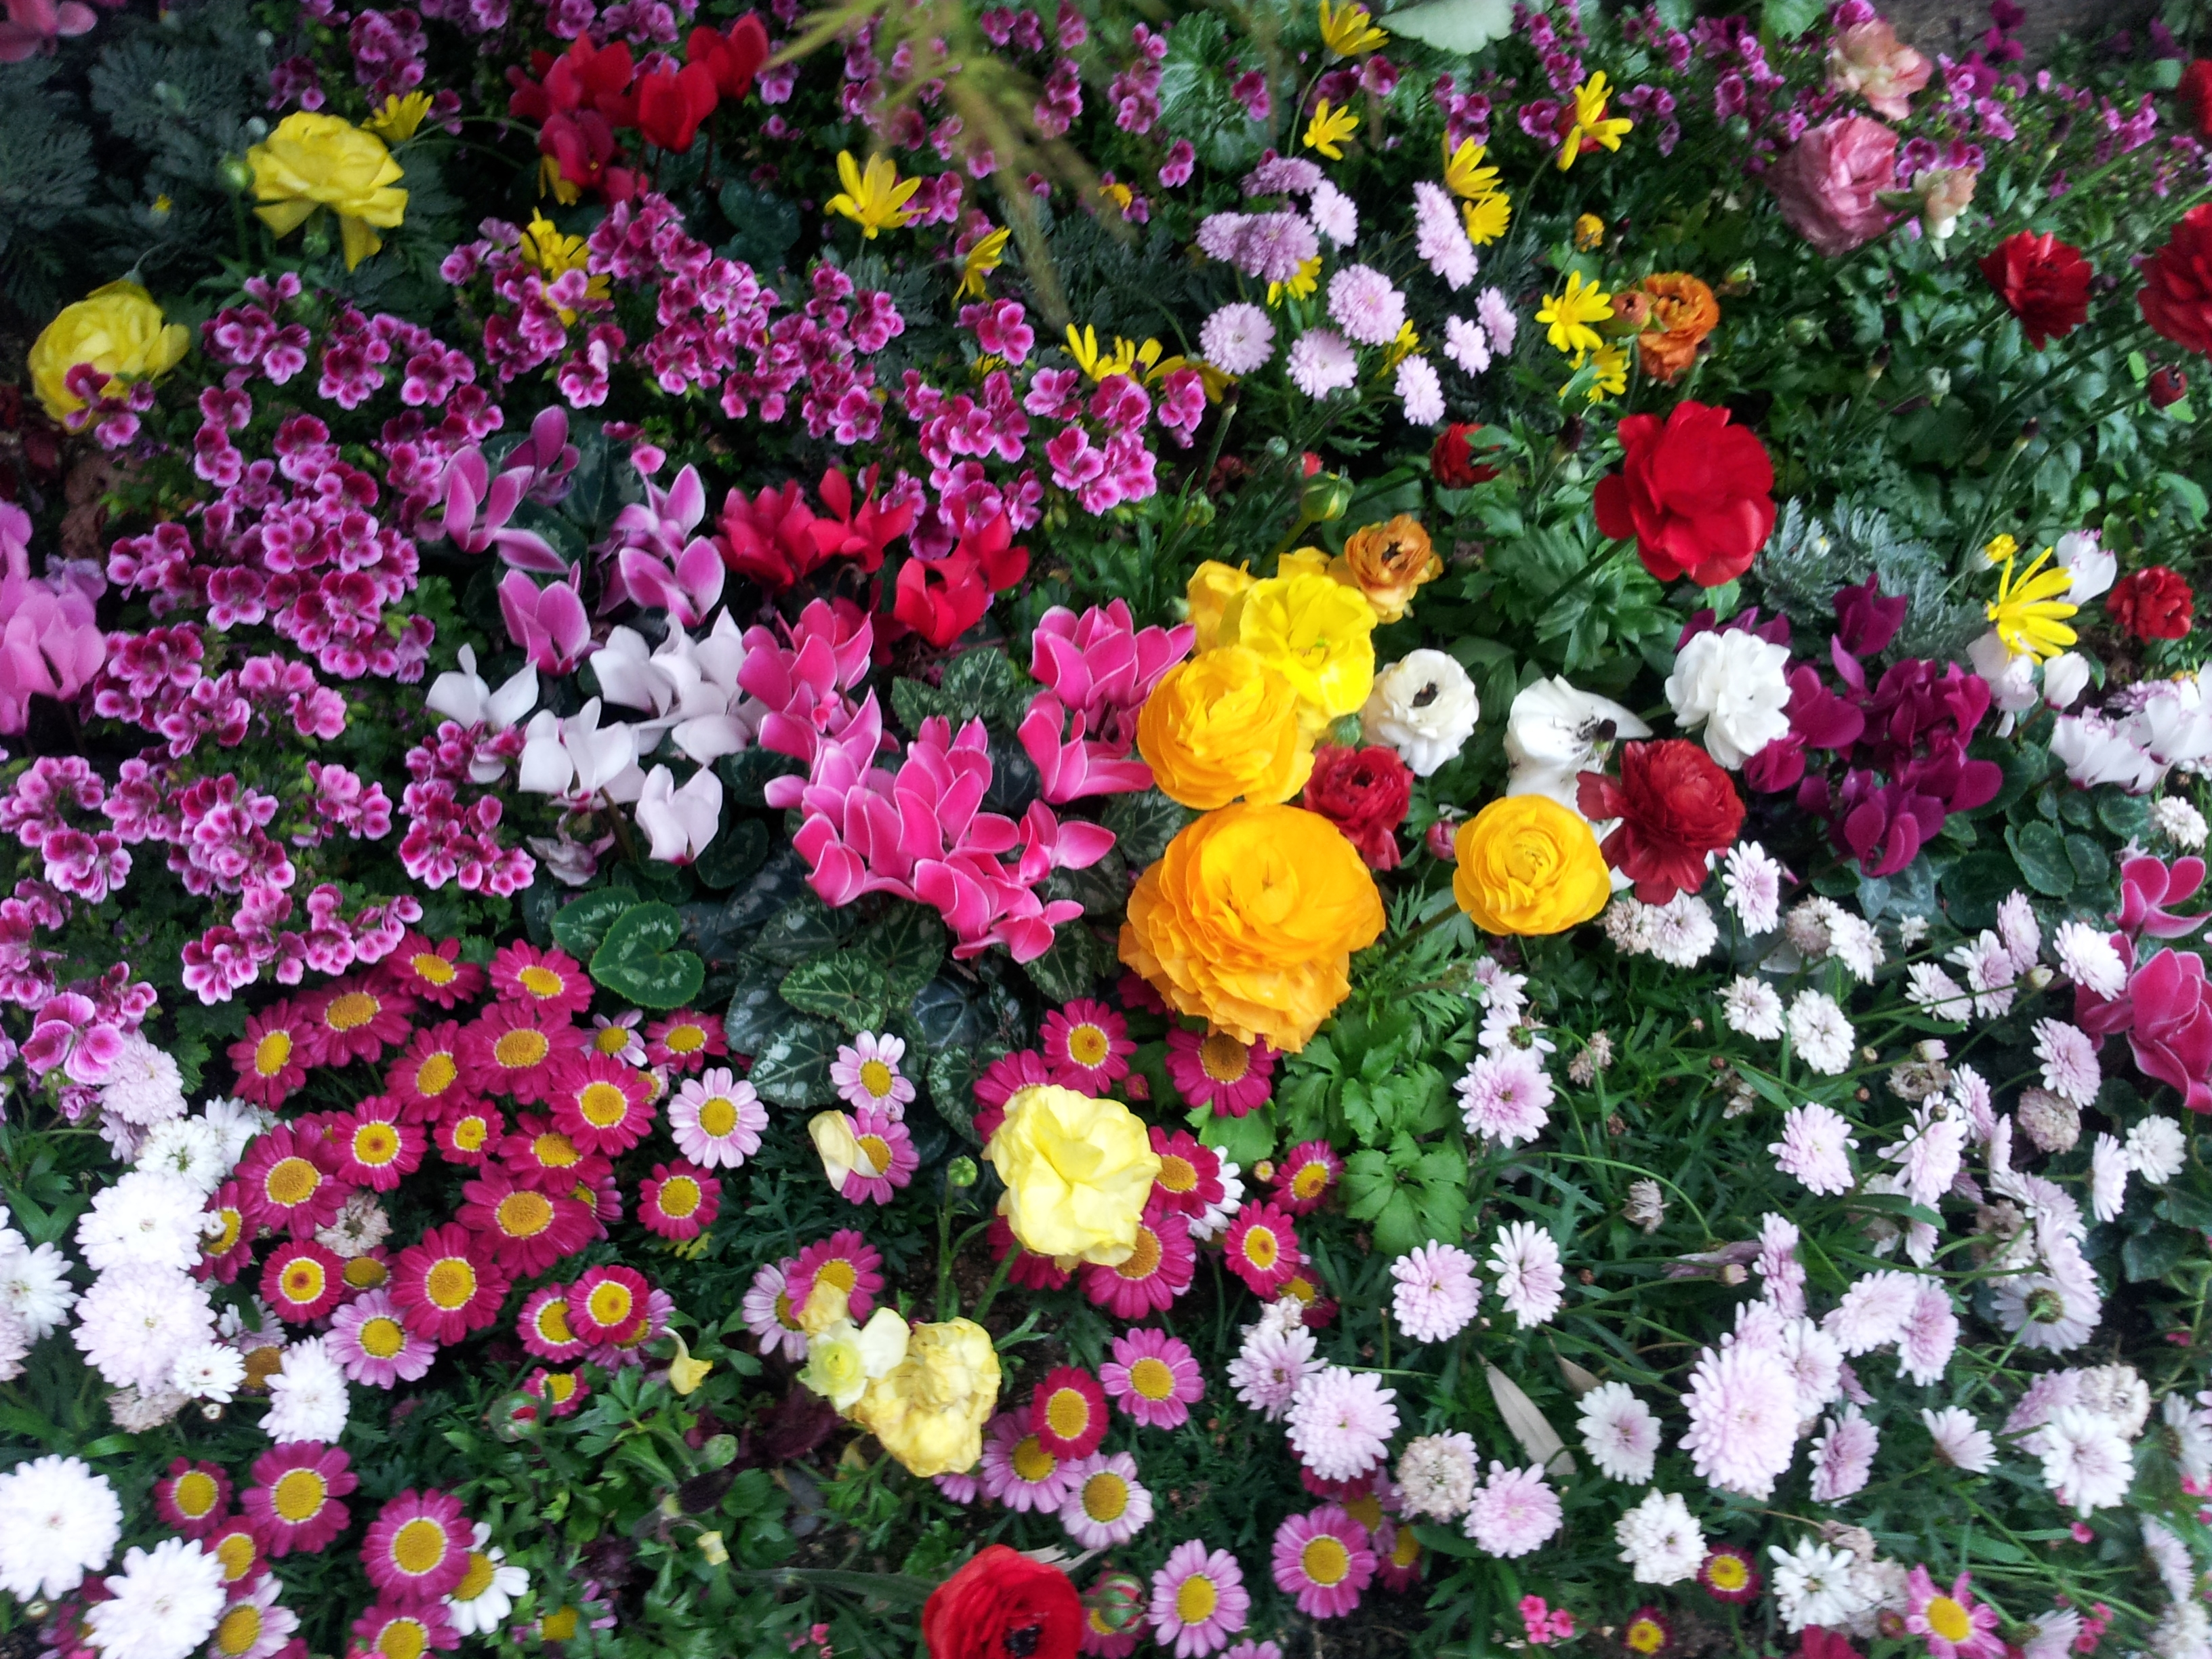 104400 Screensavers and Wallpapers Flower Bed for phone. Download Flowers, Flower Bed, Flowerbed, Flora pictures for free